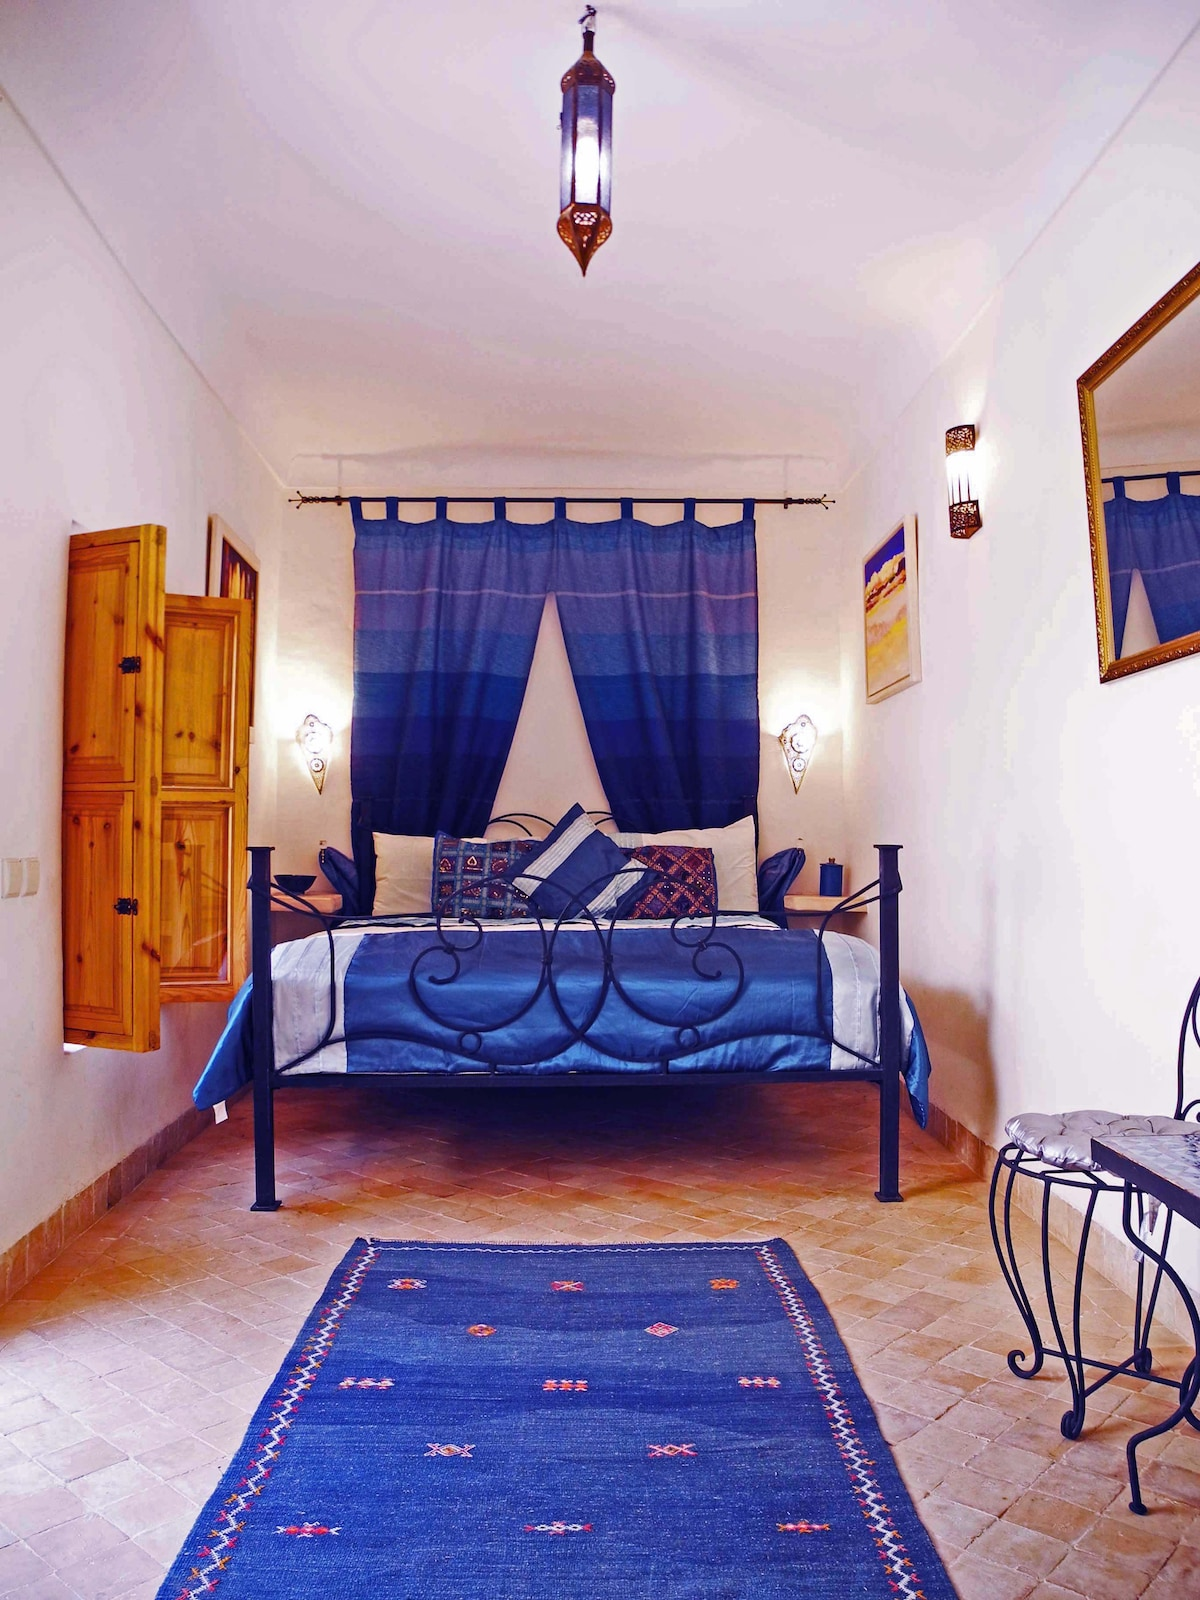 Our lovely Blue Double bedroom